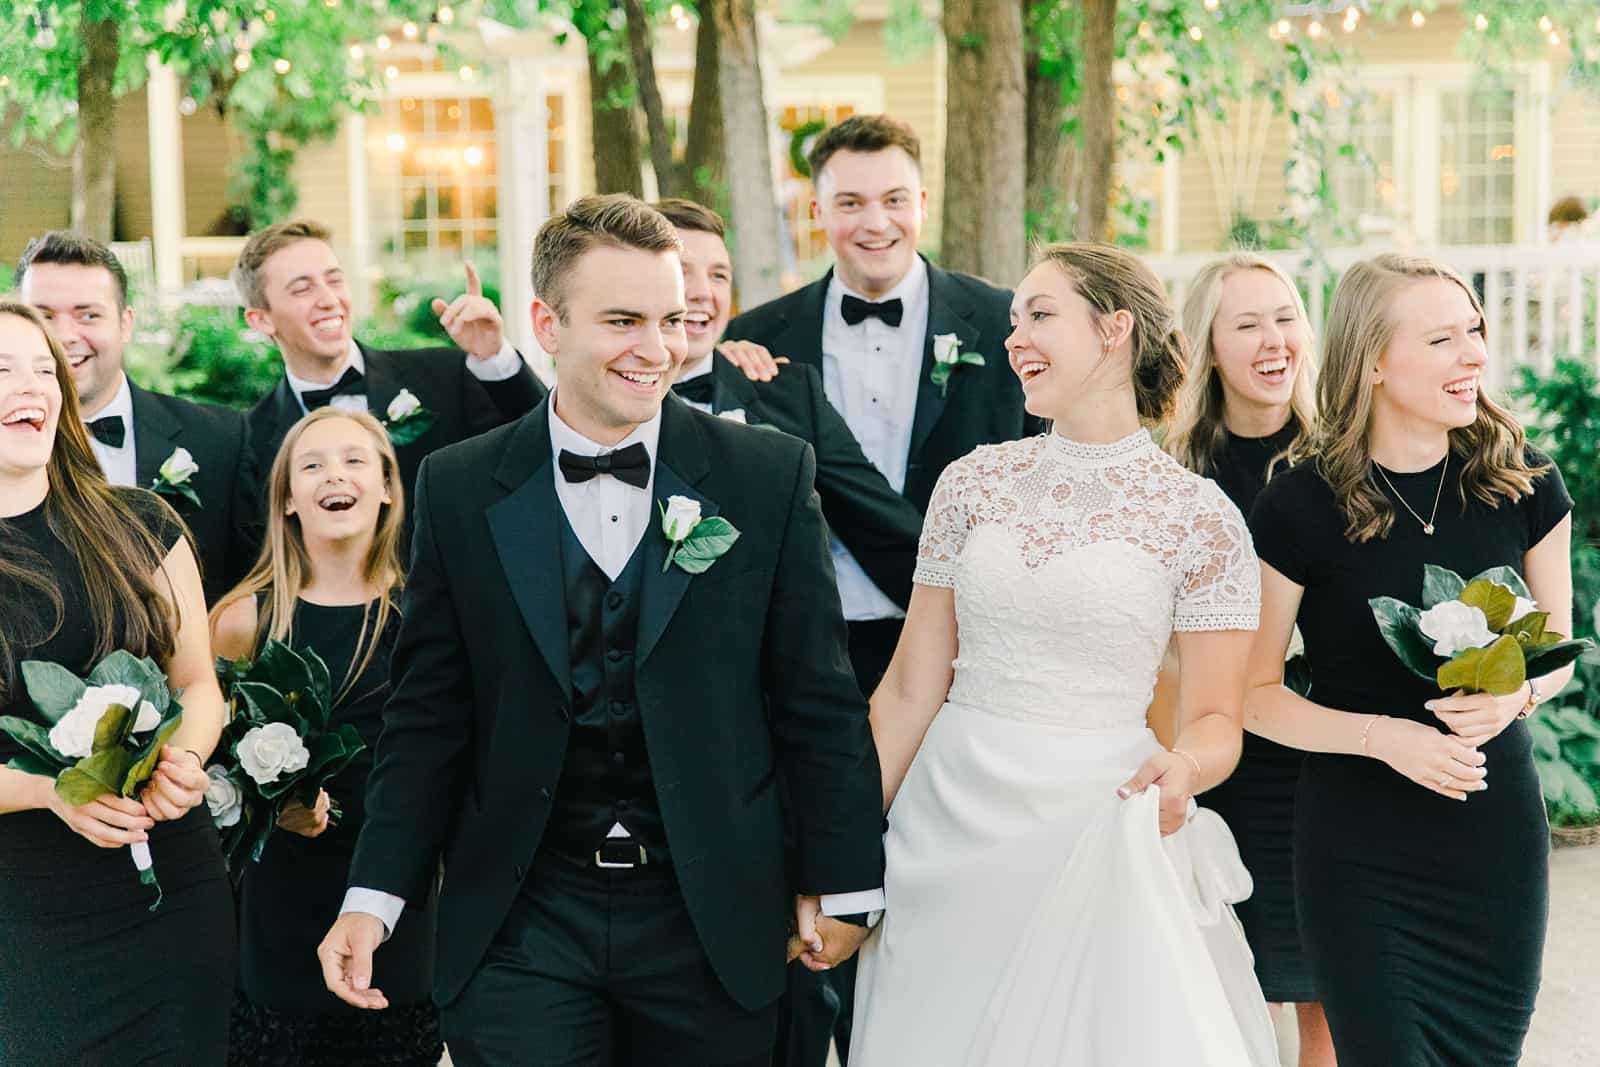 Clarion Gardens Utah Wedding, bride and groom laughing with bridal party, classic black tux with bow tie